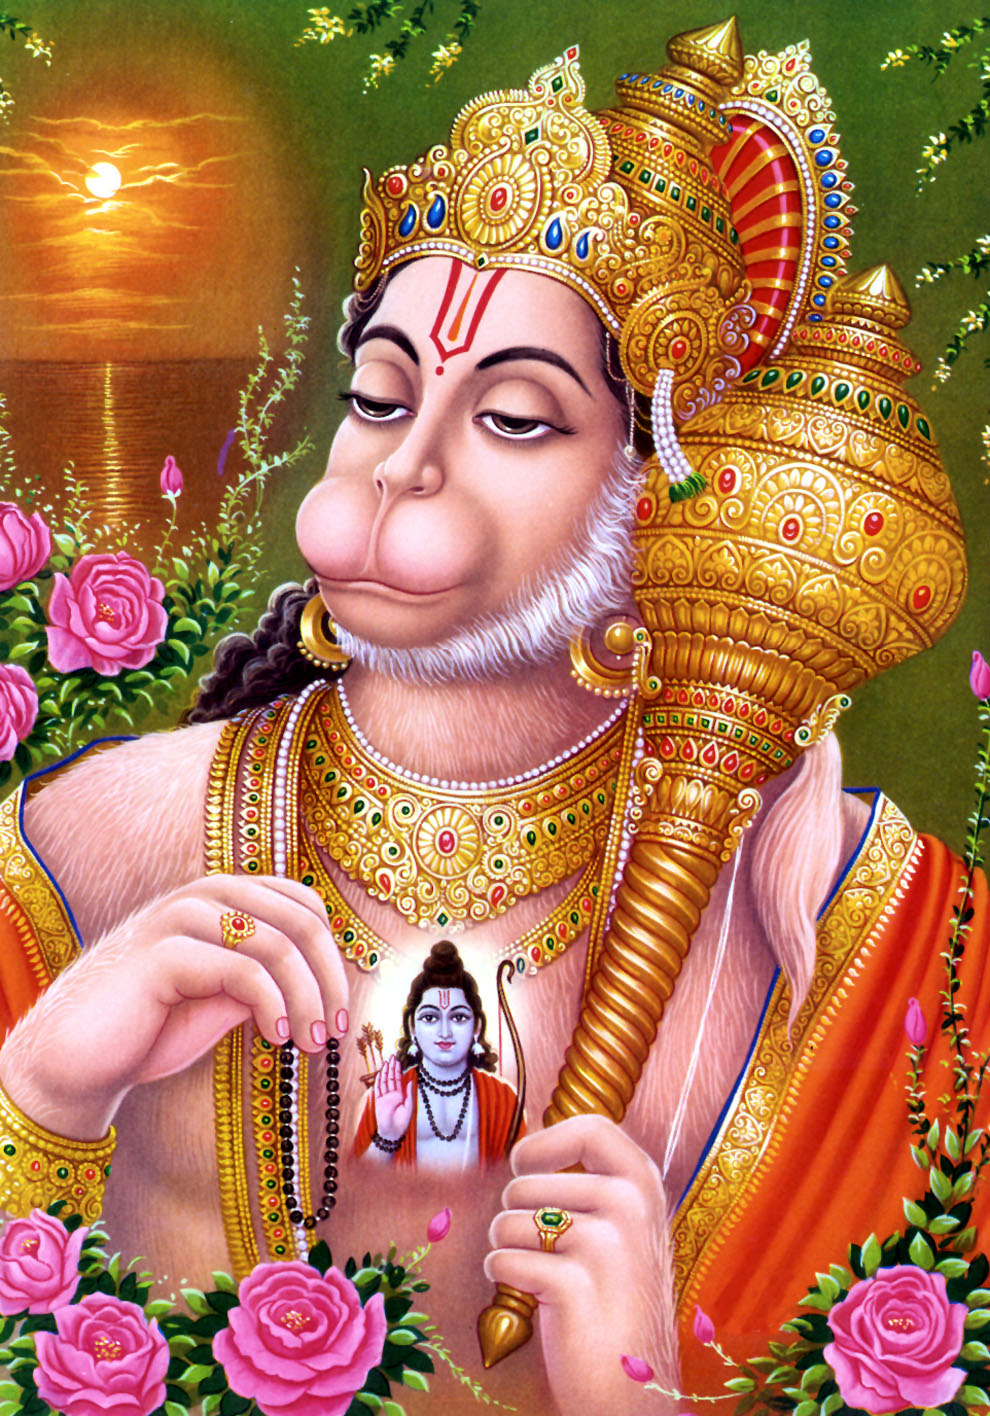 Hanuman pictures of hanuman anjaneya anjaneyalu - God images wallpapers ...